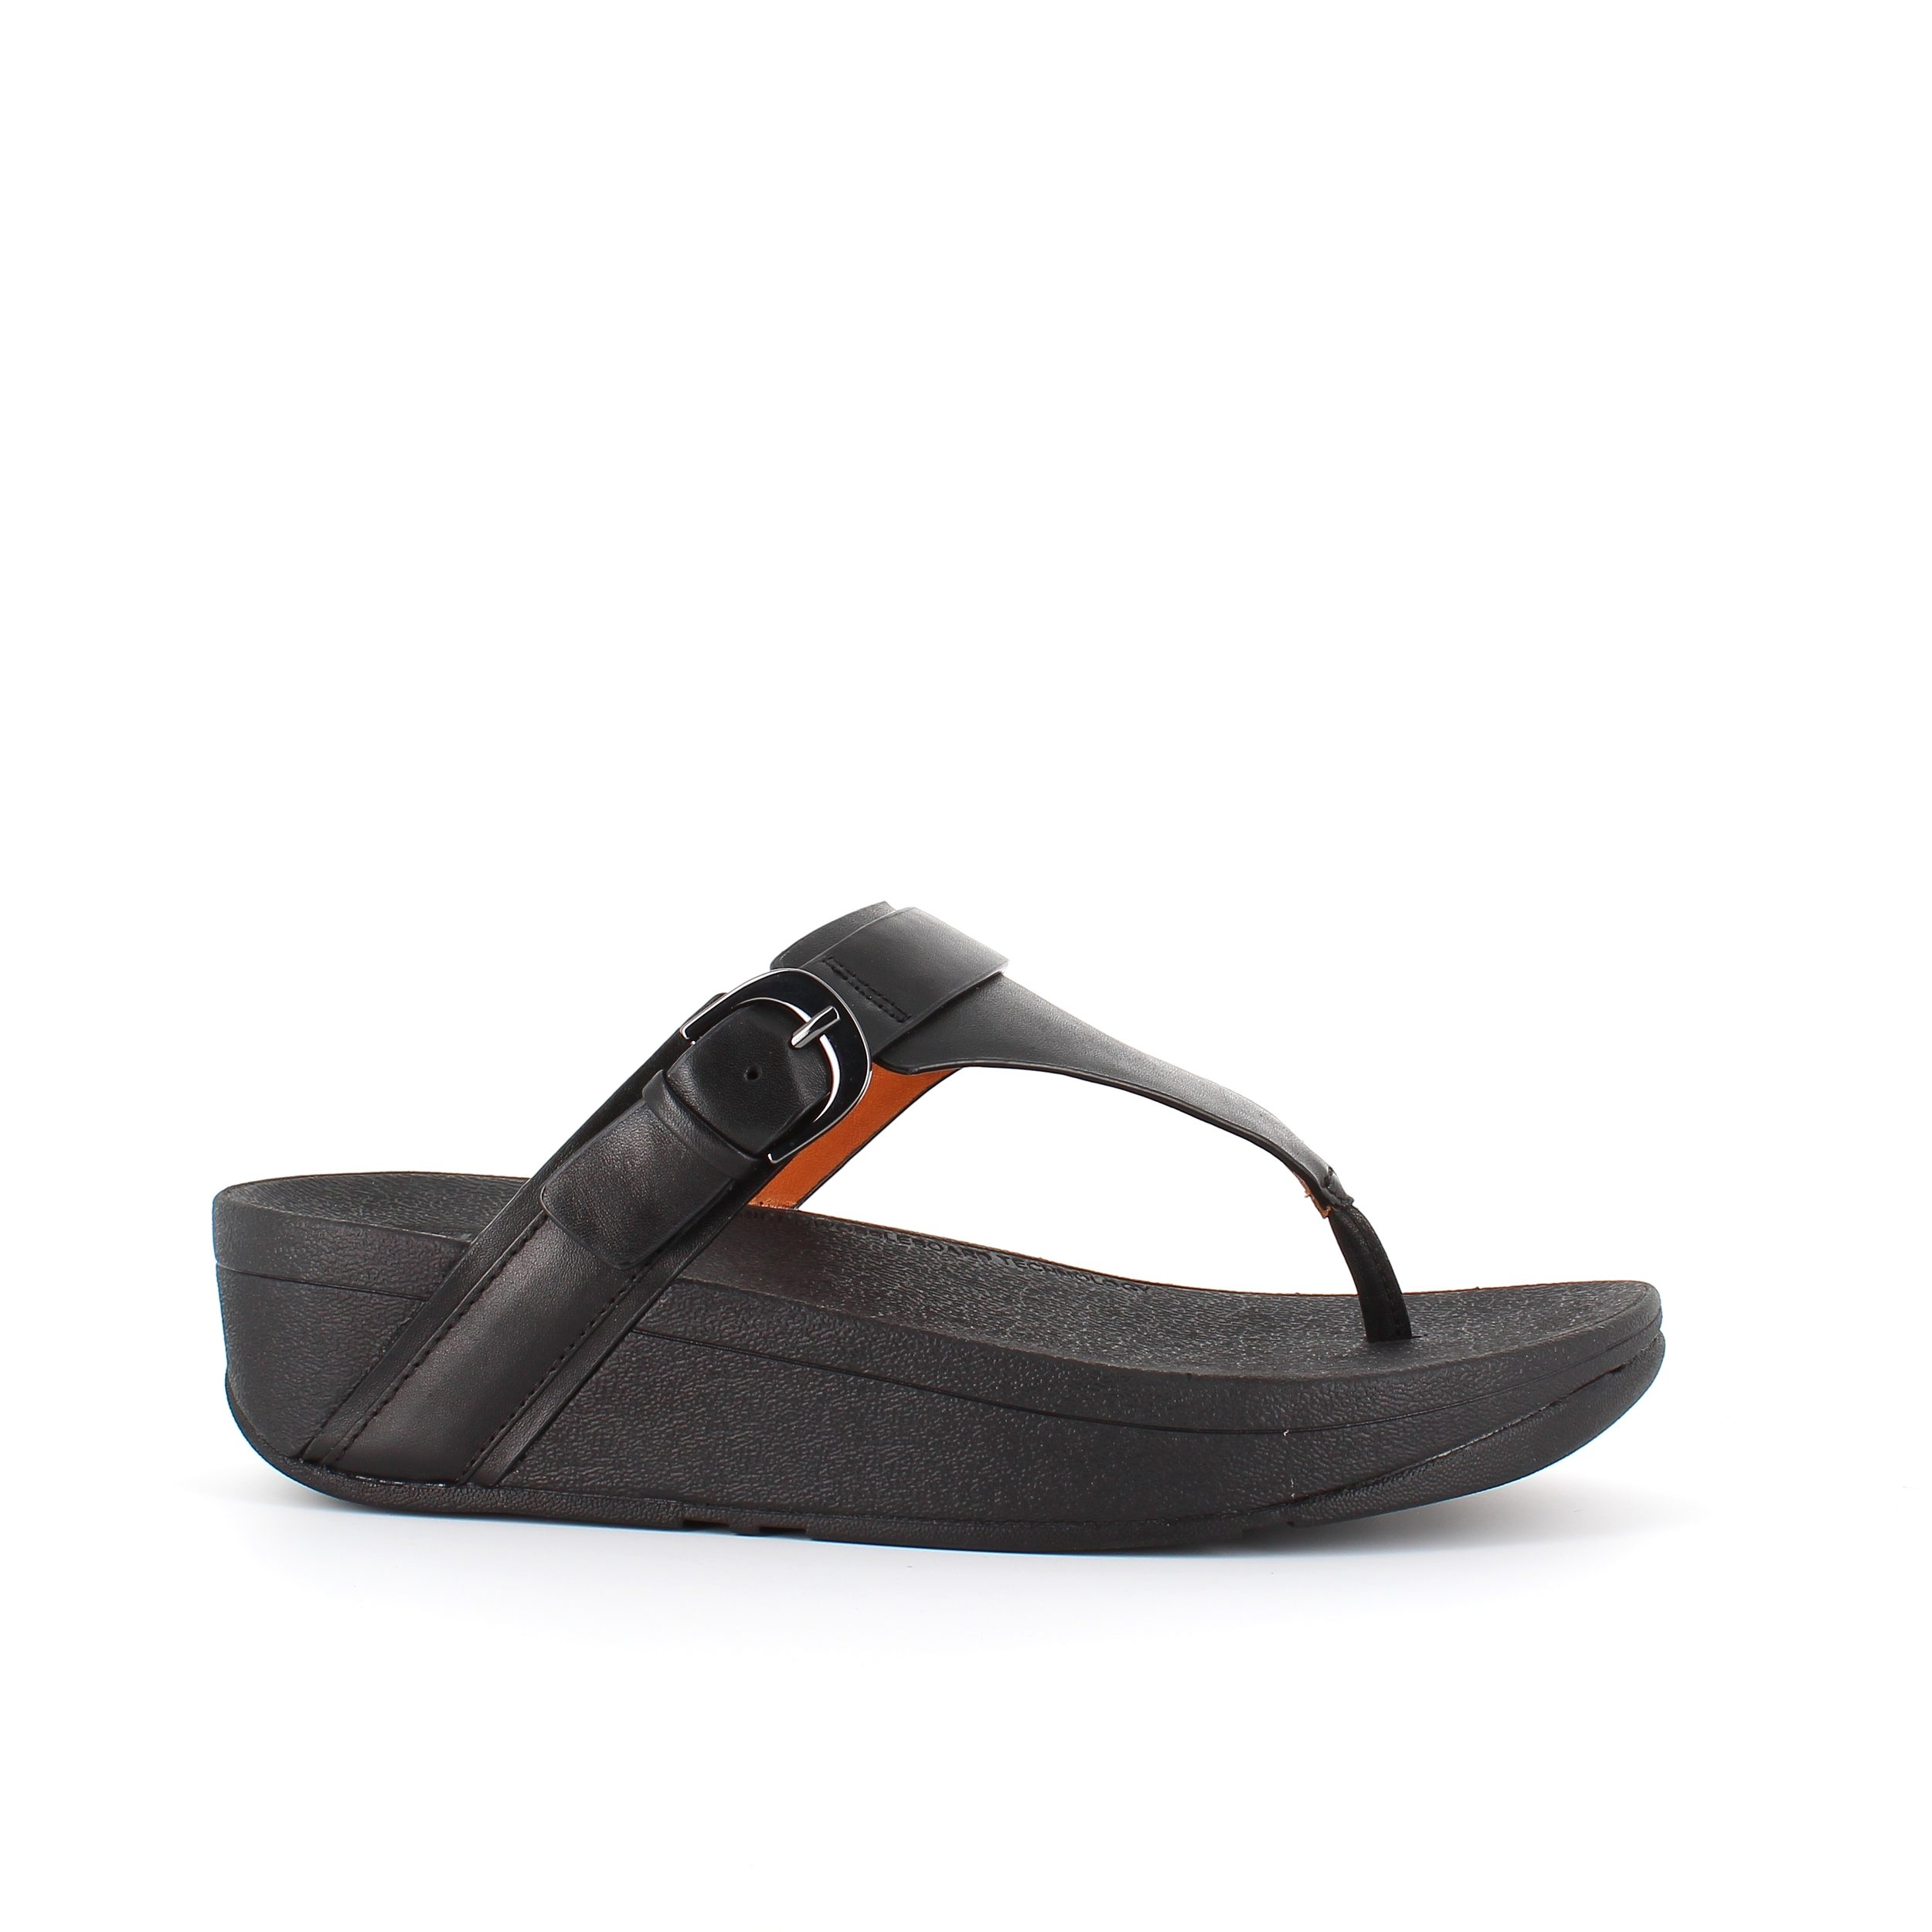 Image of   Edit fitflop sandal i læder - 42